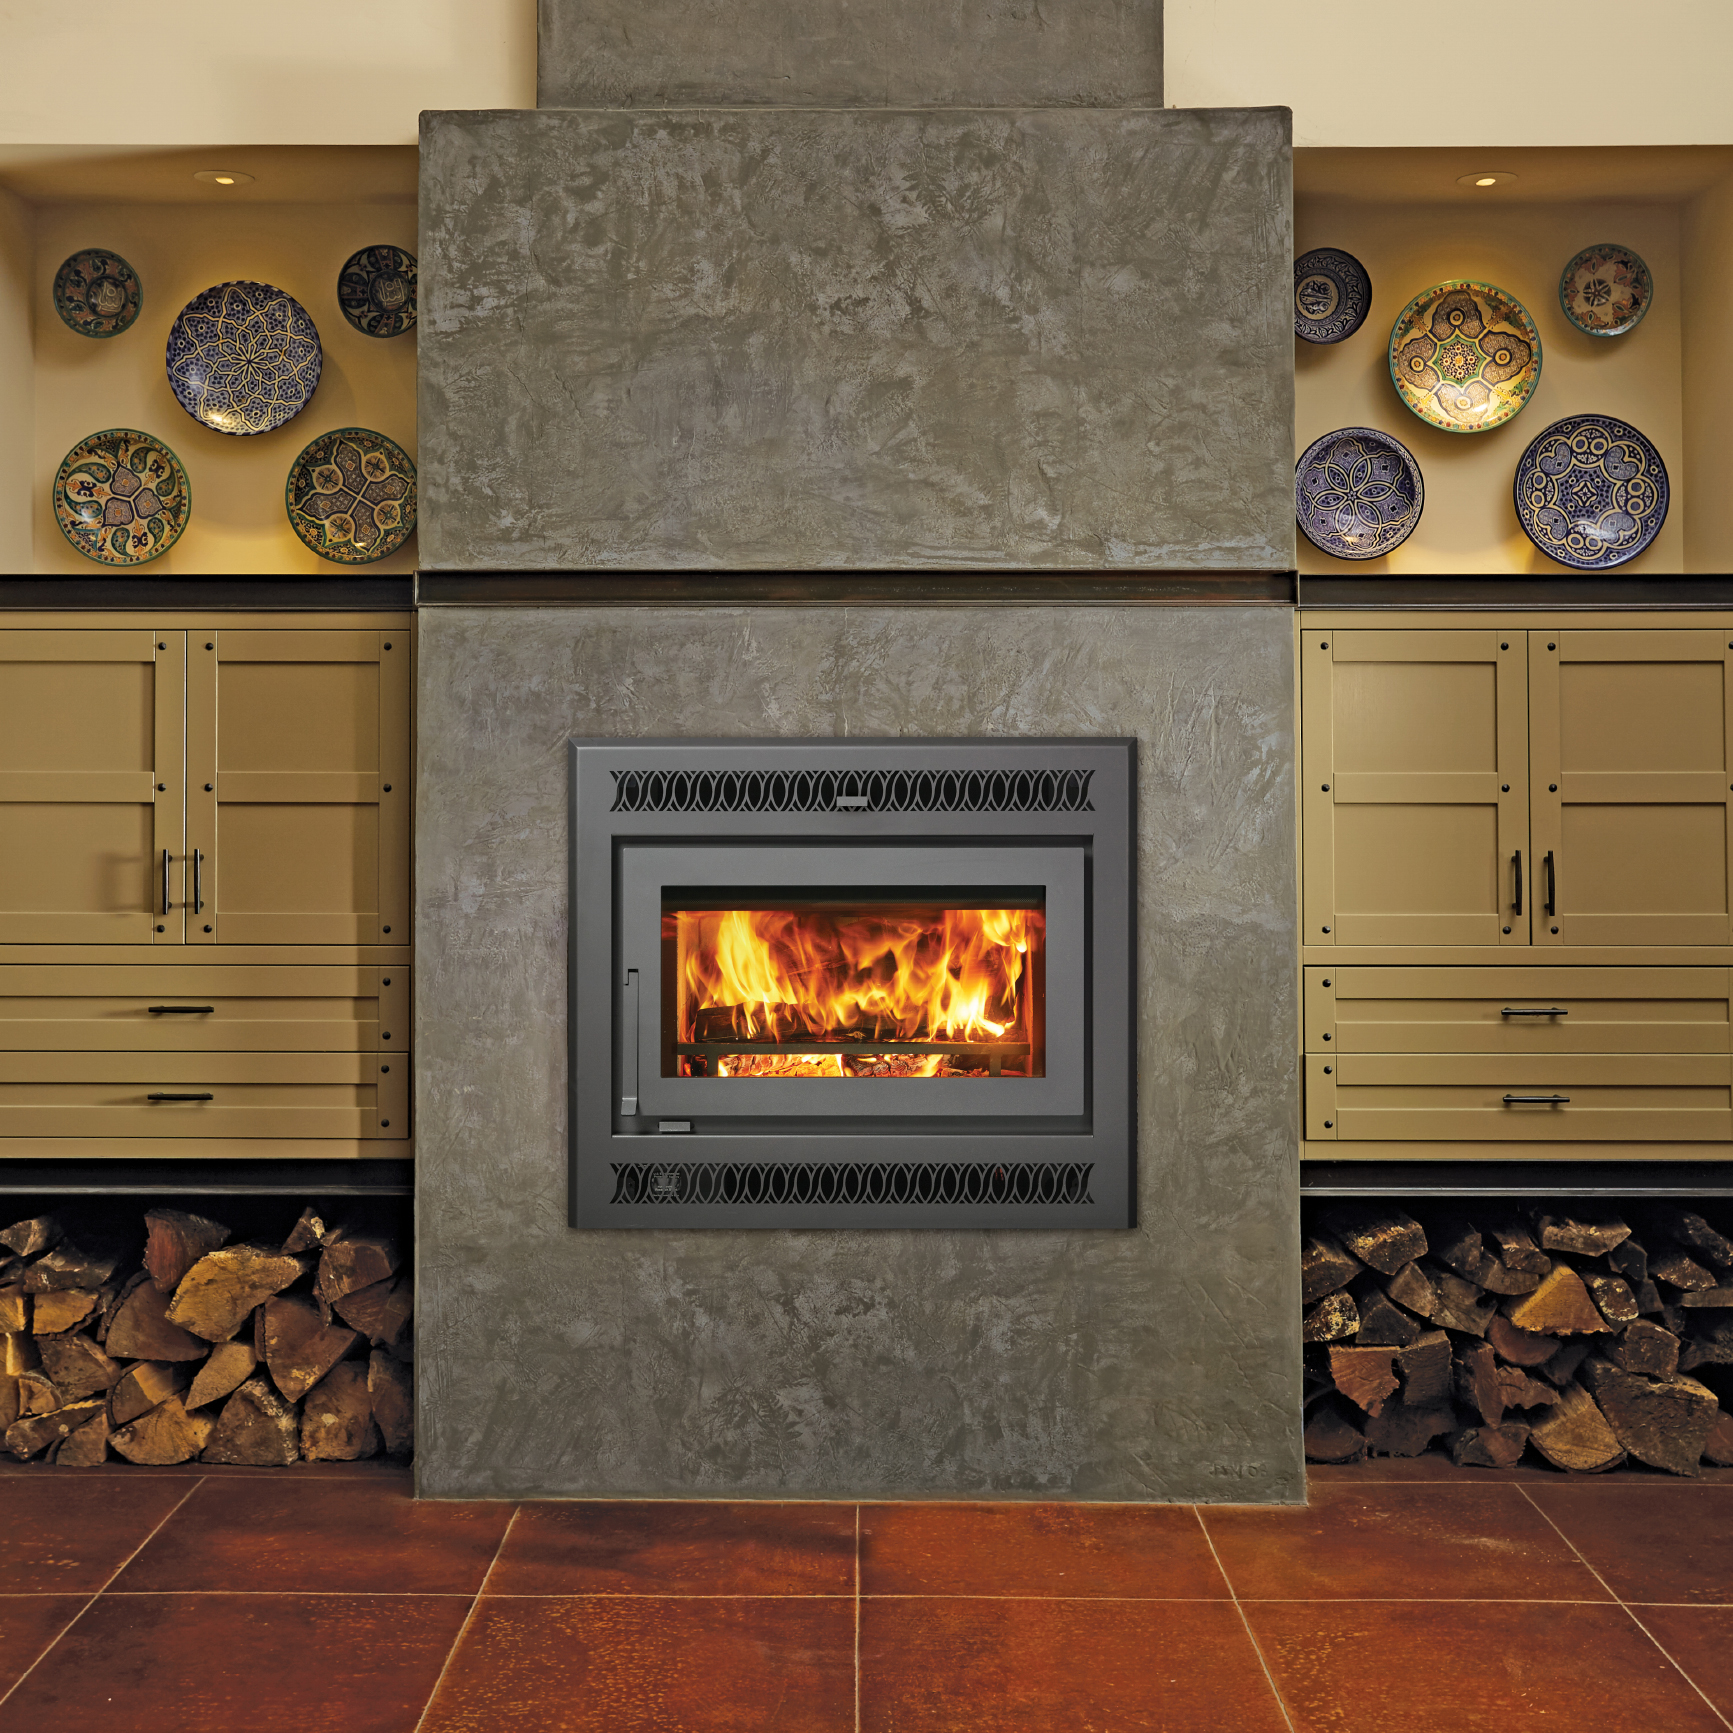 One more Image of the modern modern 42 Apex woodburning fireplace featuring a traditional face.